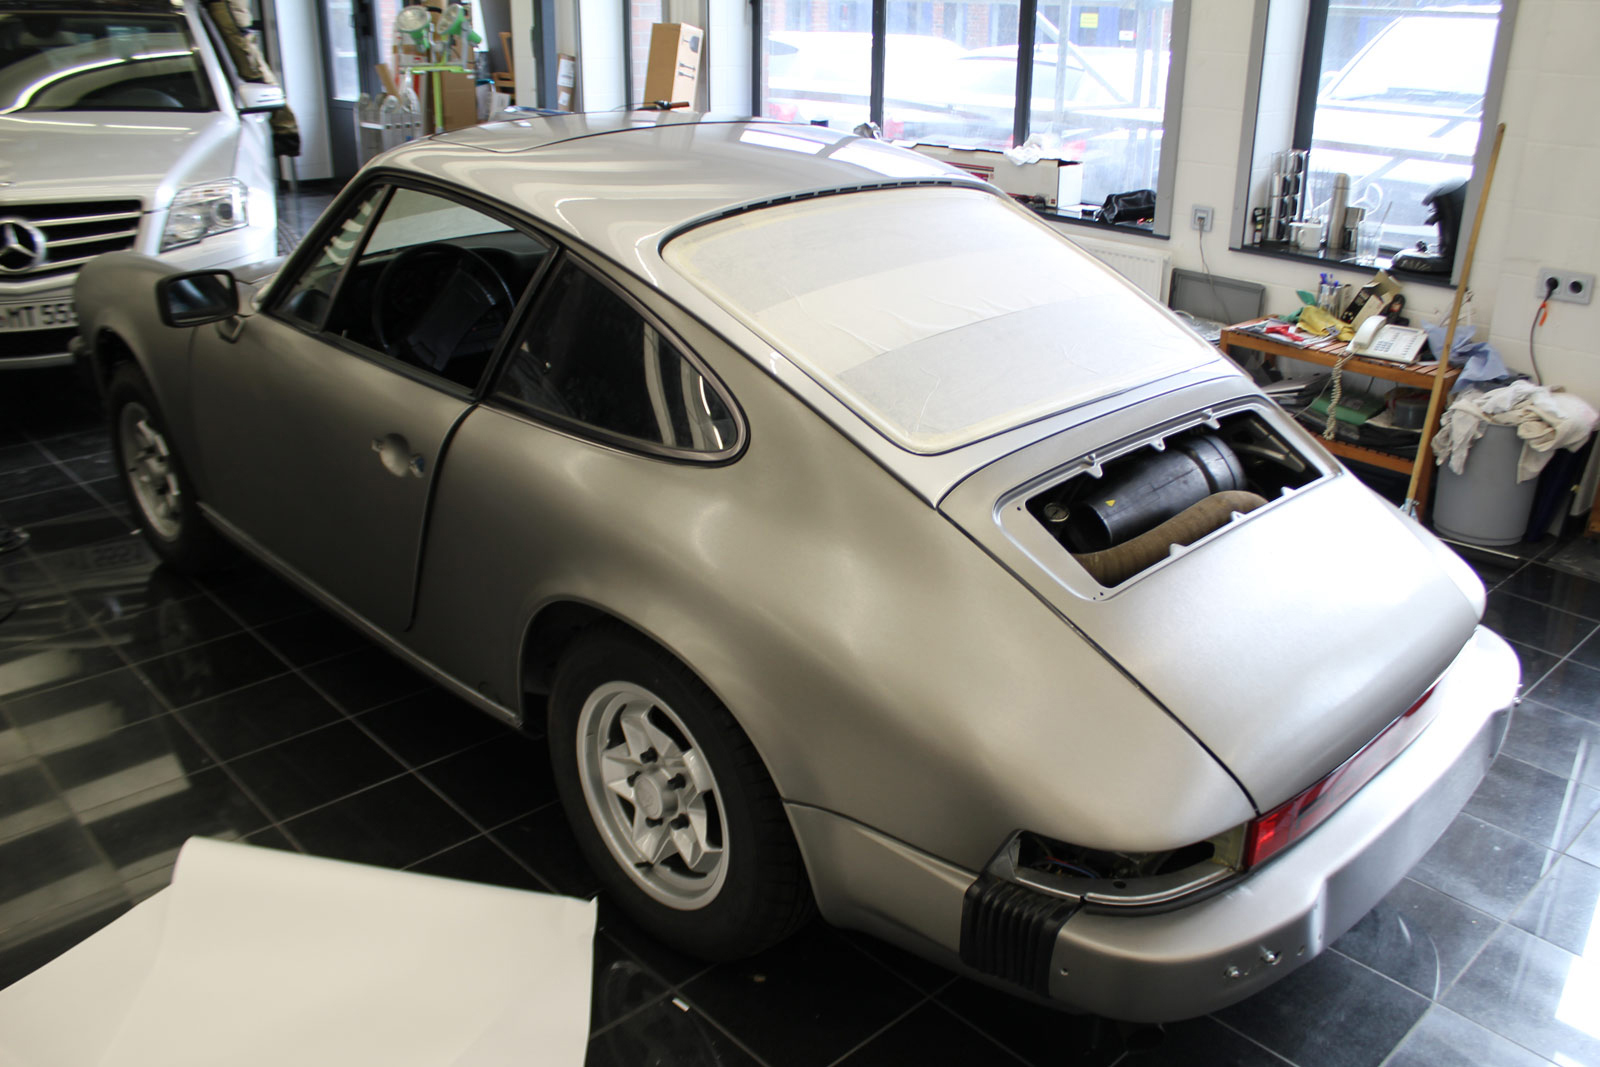 PORSCHE_911_FOLIERUNG_BRUSHED_STEEL_08